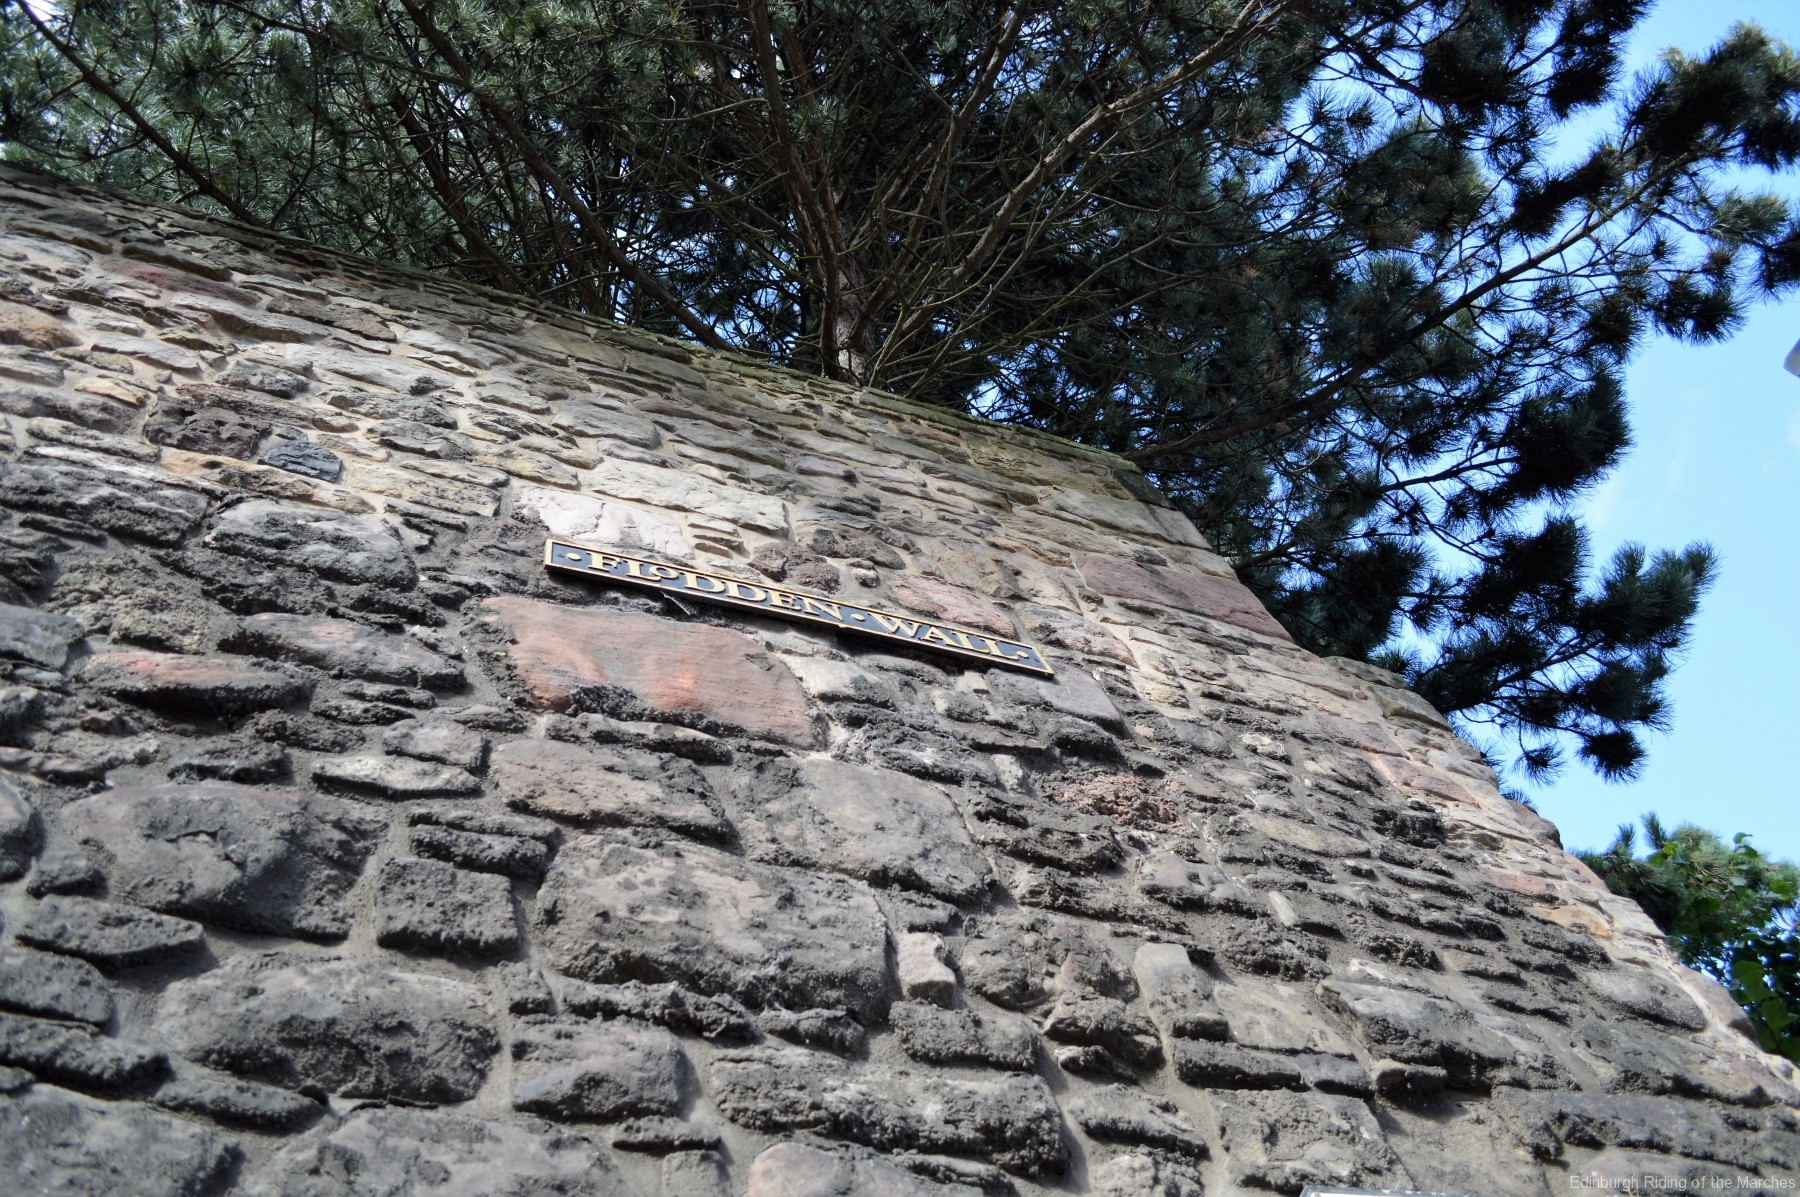 The magnificent height of the Flodden Wall